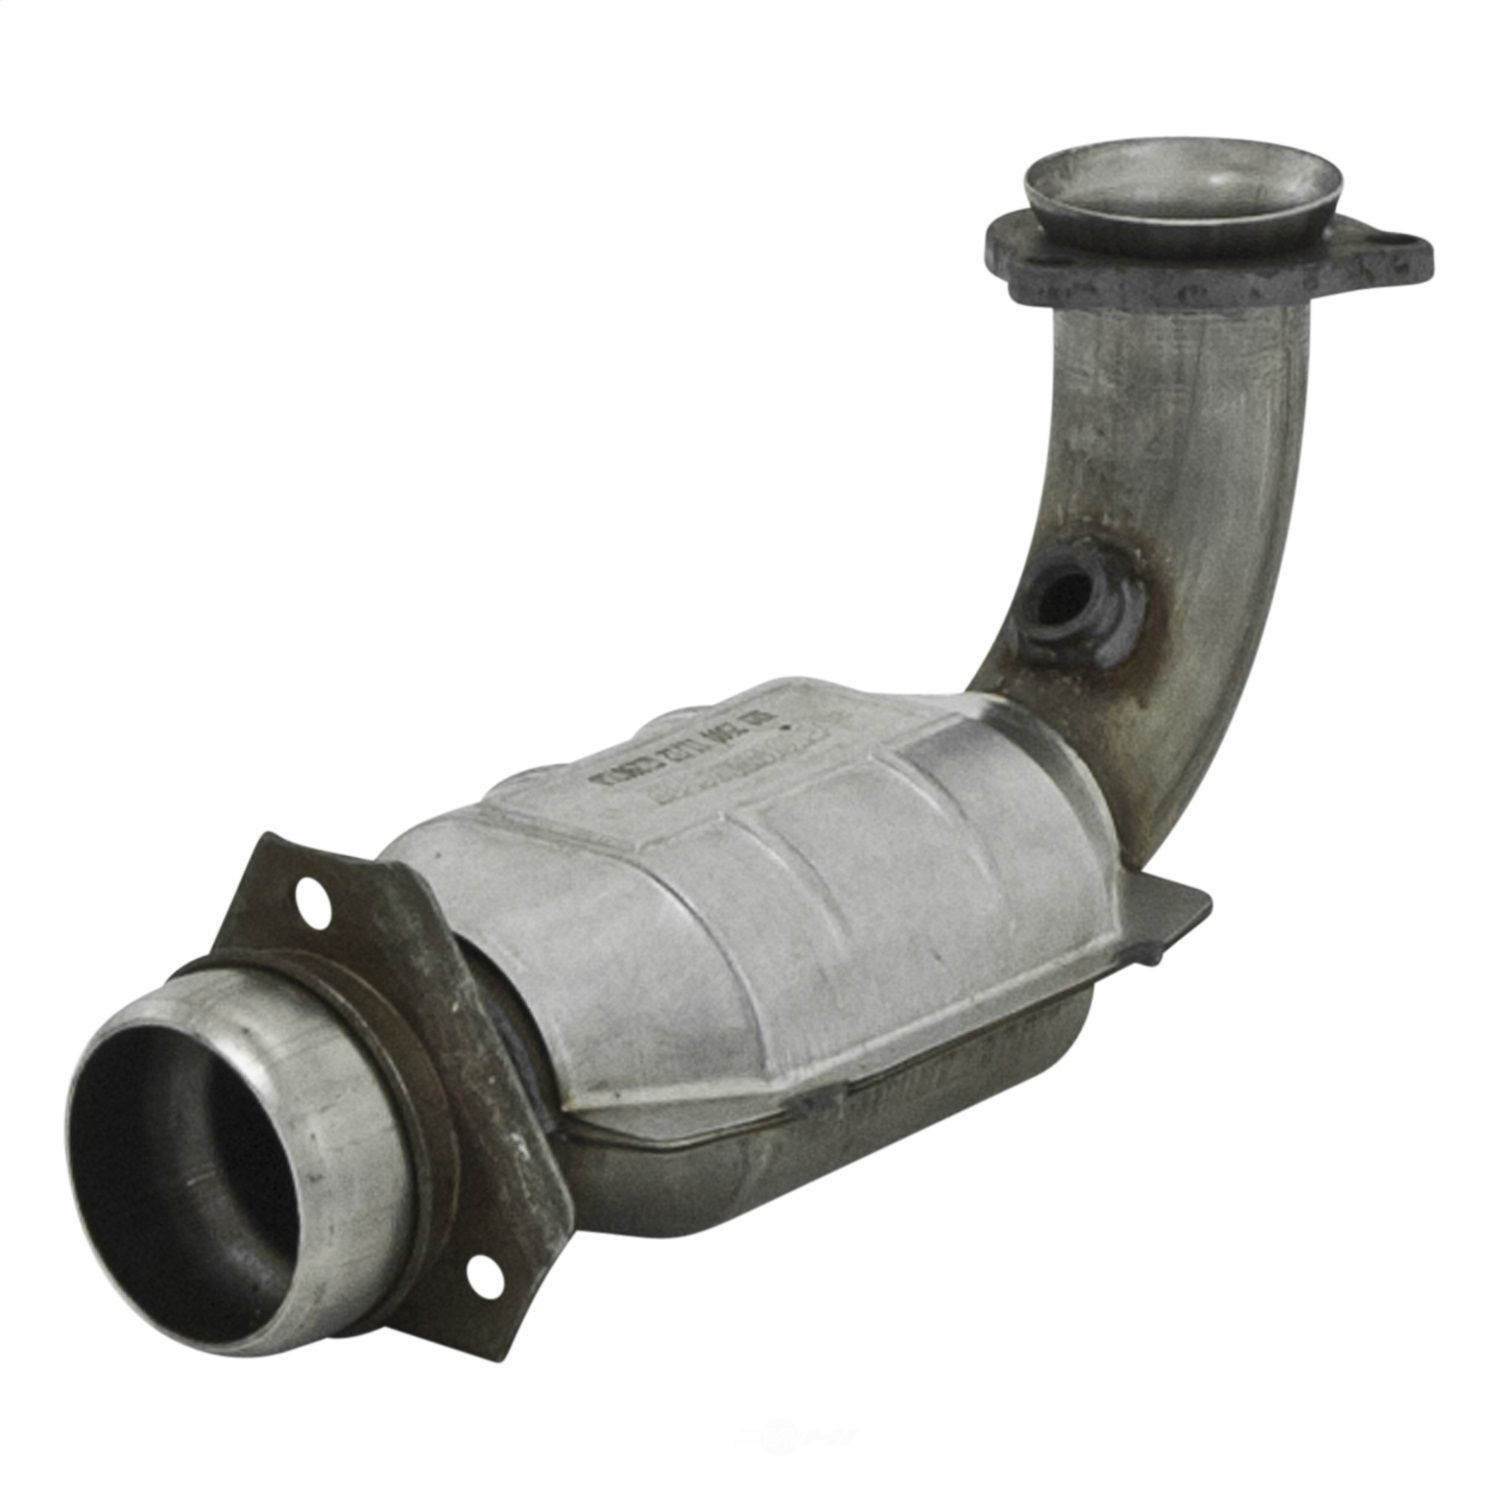 FLOWMASTER - Direct Fit Catalytic Converter (Left) - FLO 2010012